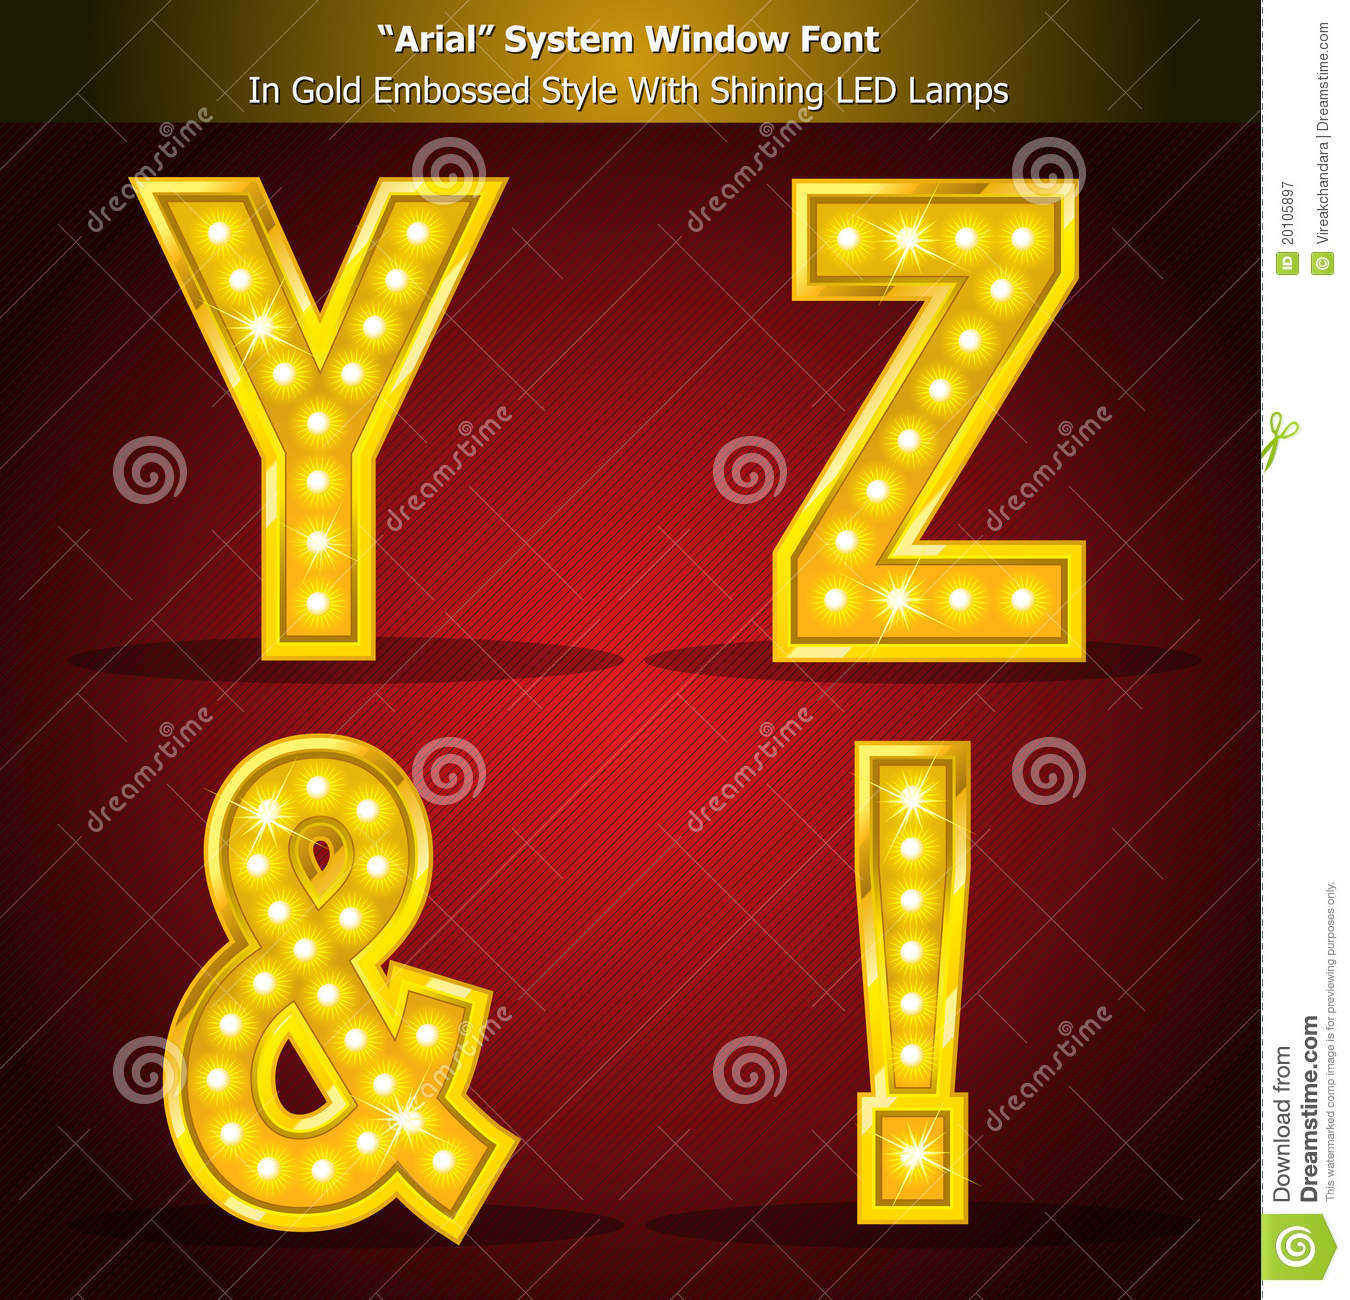 Arial Font In Gold Style With Shining LED Lamps Stock Vector